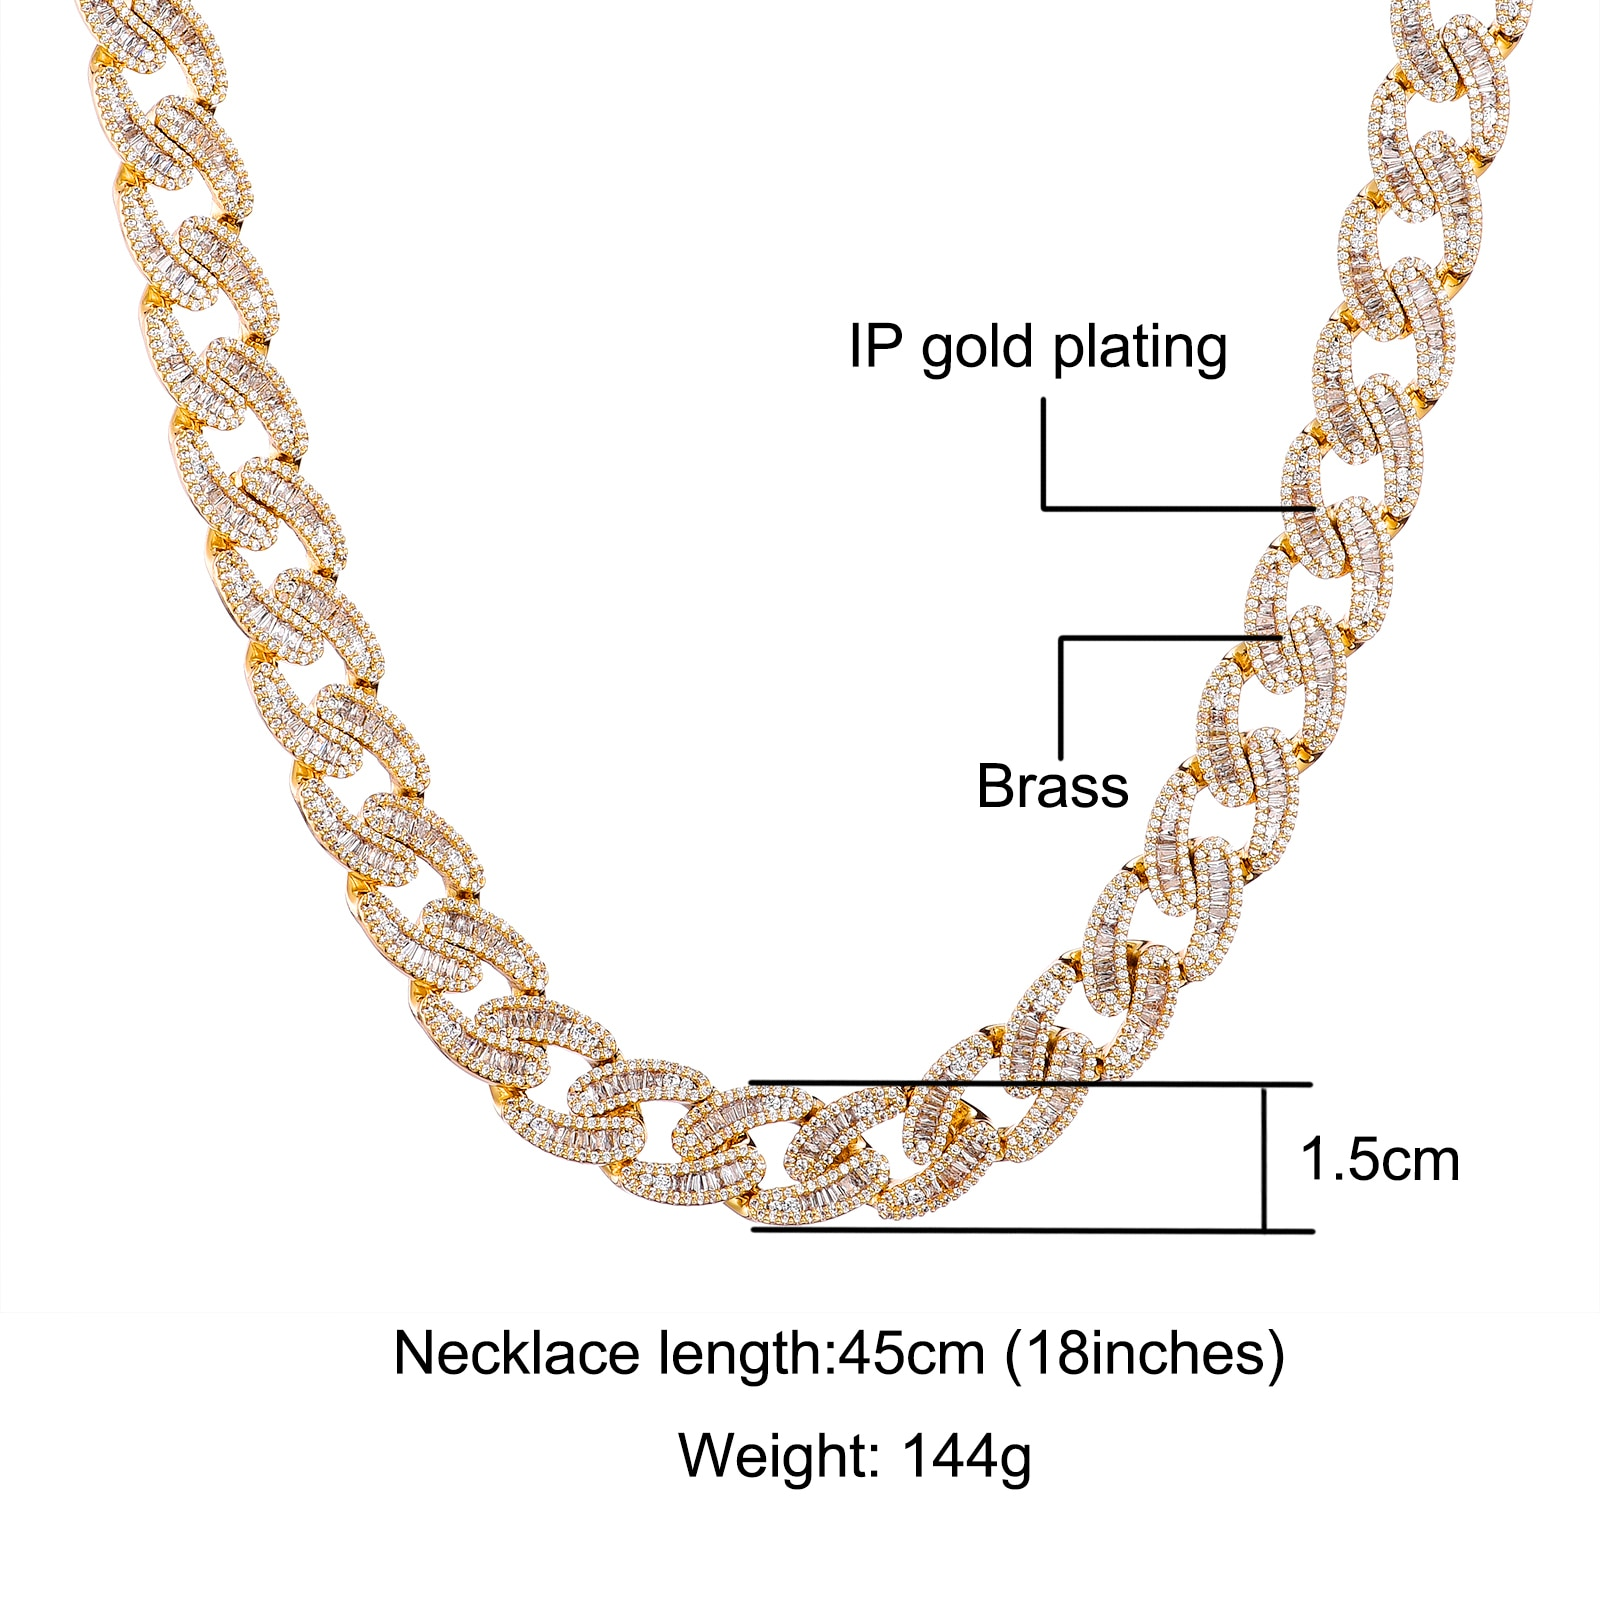 D&Z New 15mm Baguette Cuban Link Chain Spring Buckle Bling Iced Out Cubic Zirconia Necklace With Solid Back For Men Jewelry